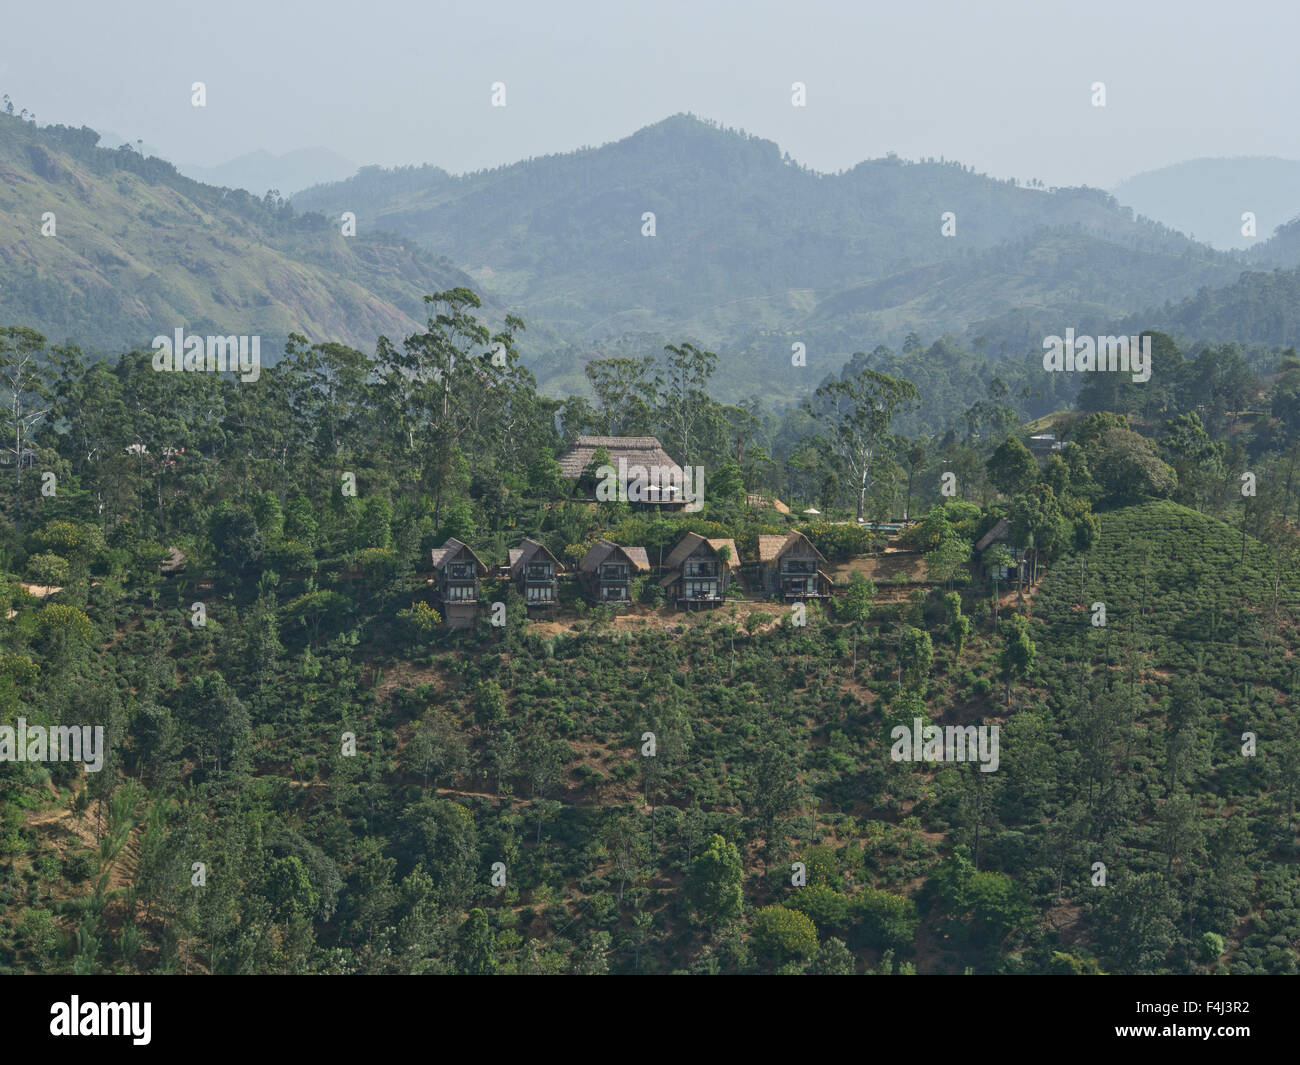 Mountain scenery and tea plantations around Ella, in the highlands of Sri Lanka, Asia - Stock Image